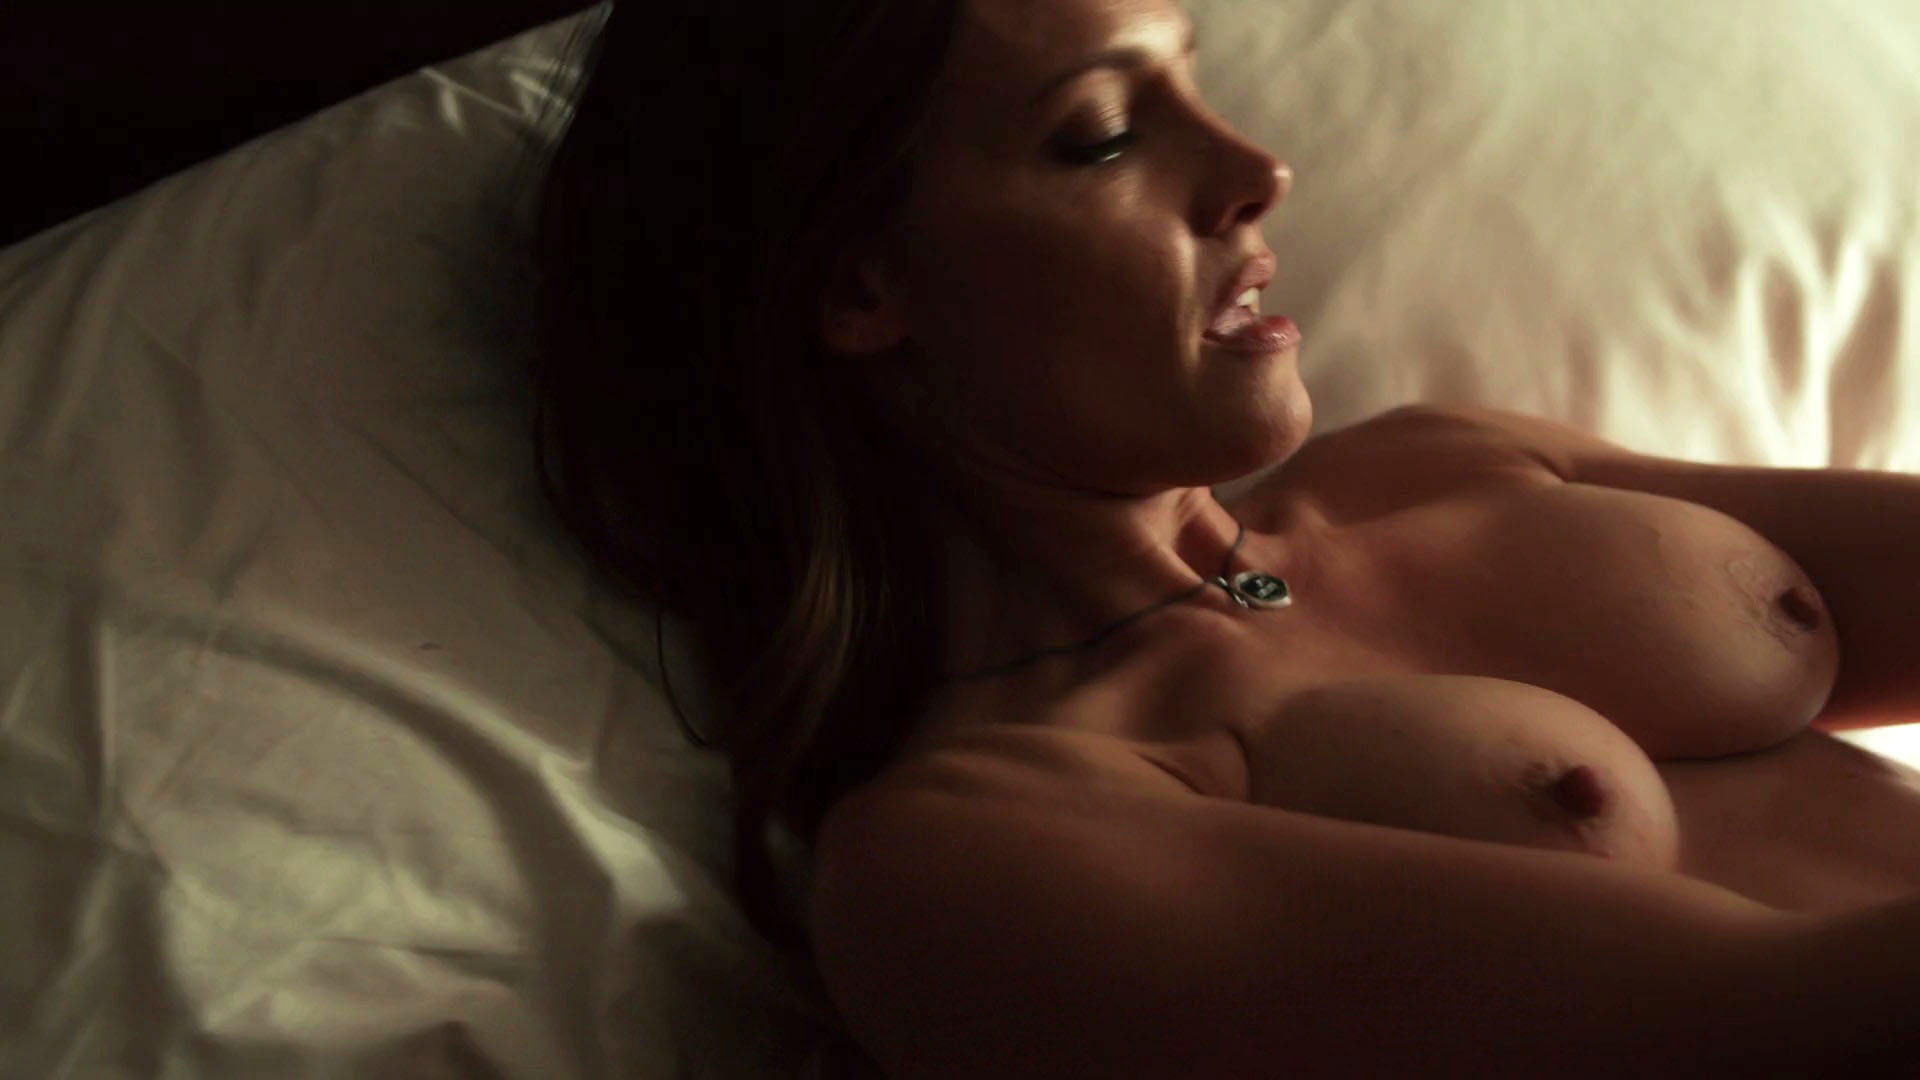 Hollywood hot full movie download abuse